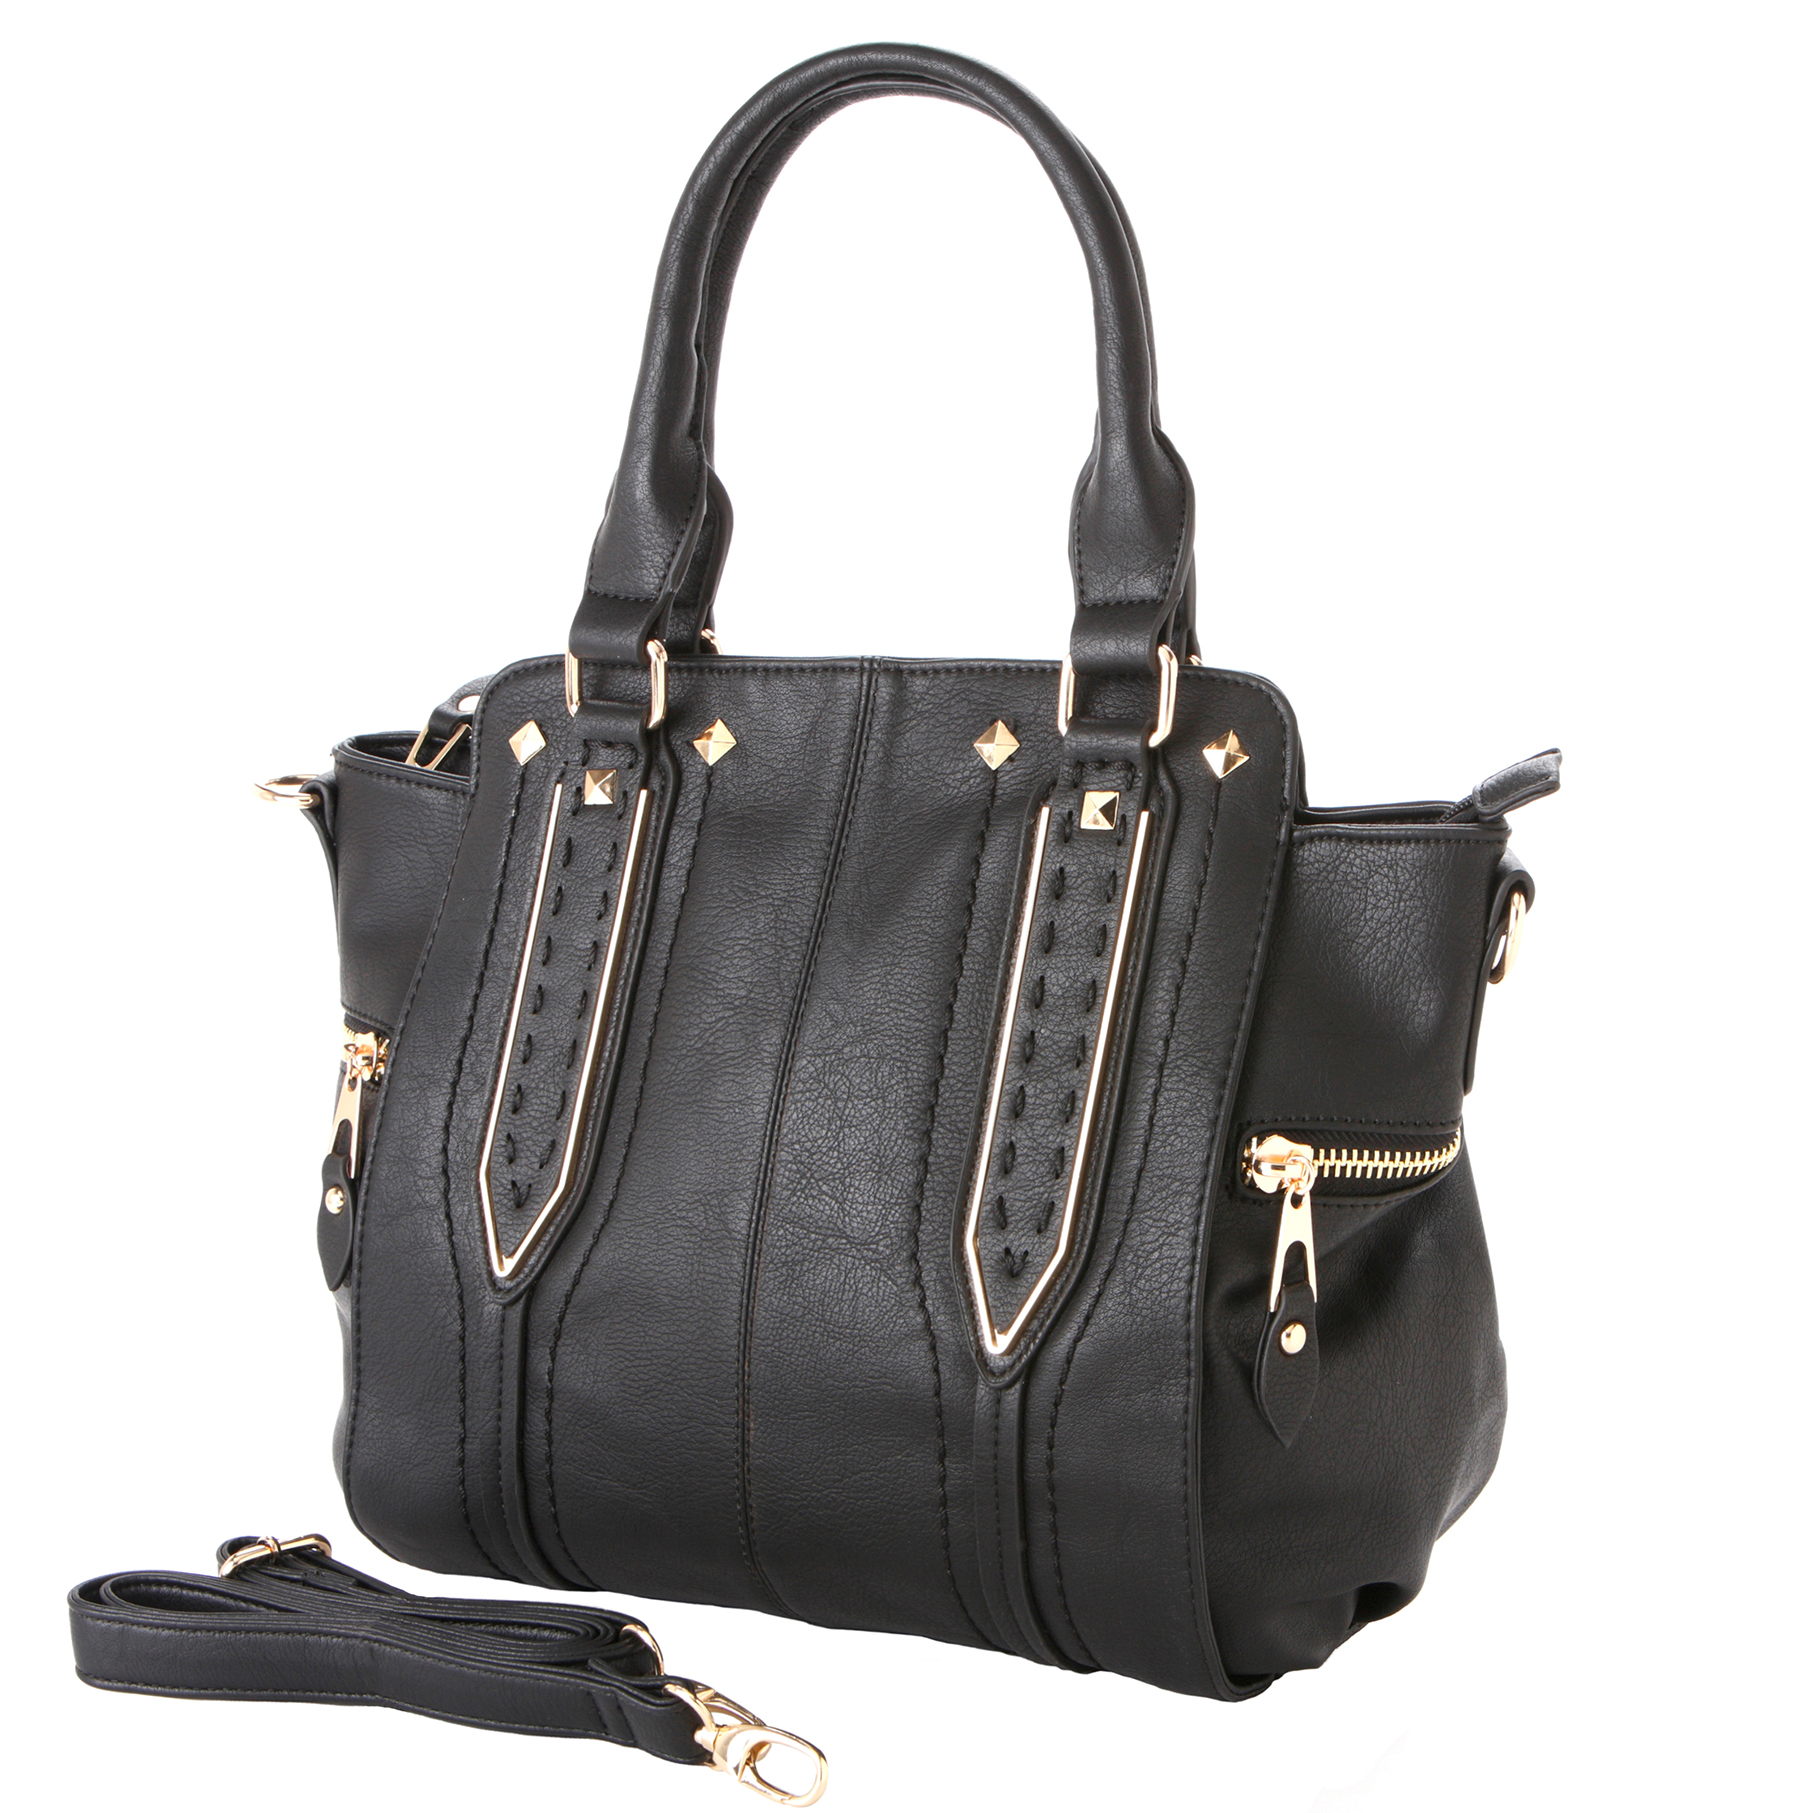 NORI Black Top Handle Office Tote Style Handbag main